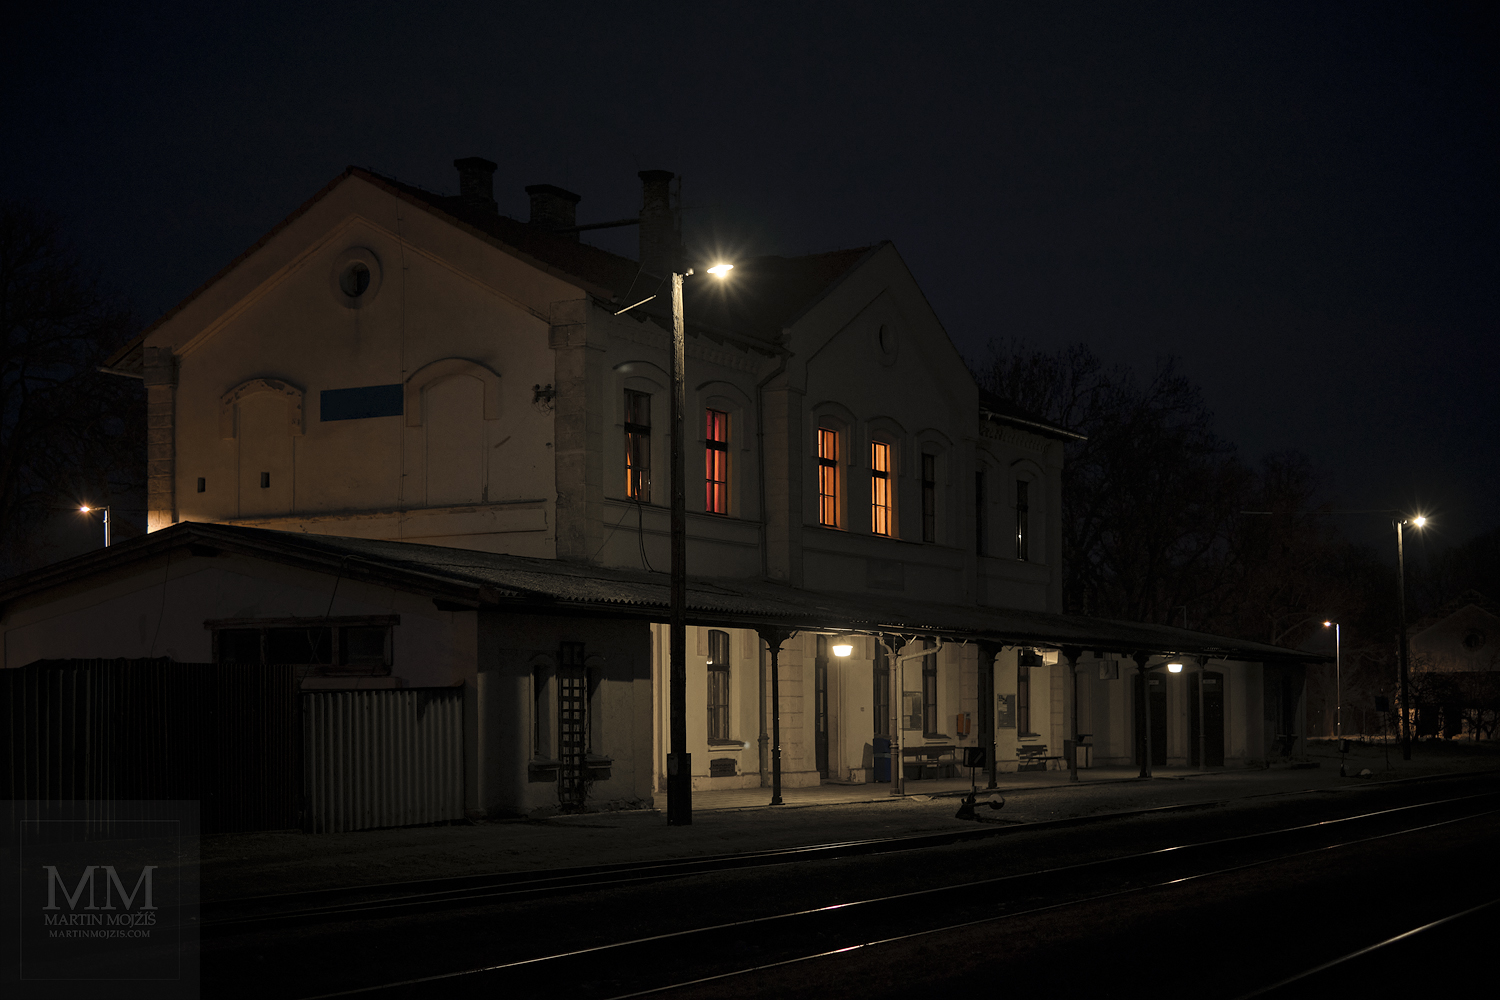 Fine Art photograph of the evening railway station. Martin Mojzis.